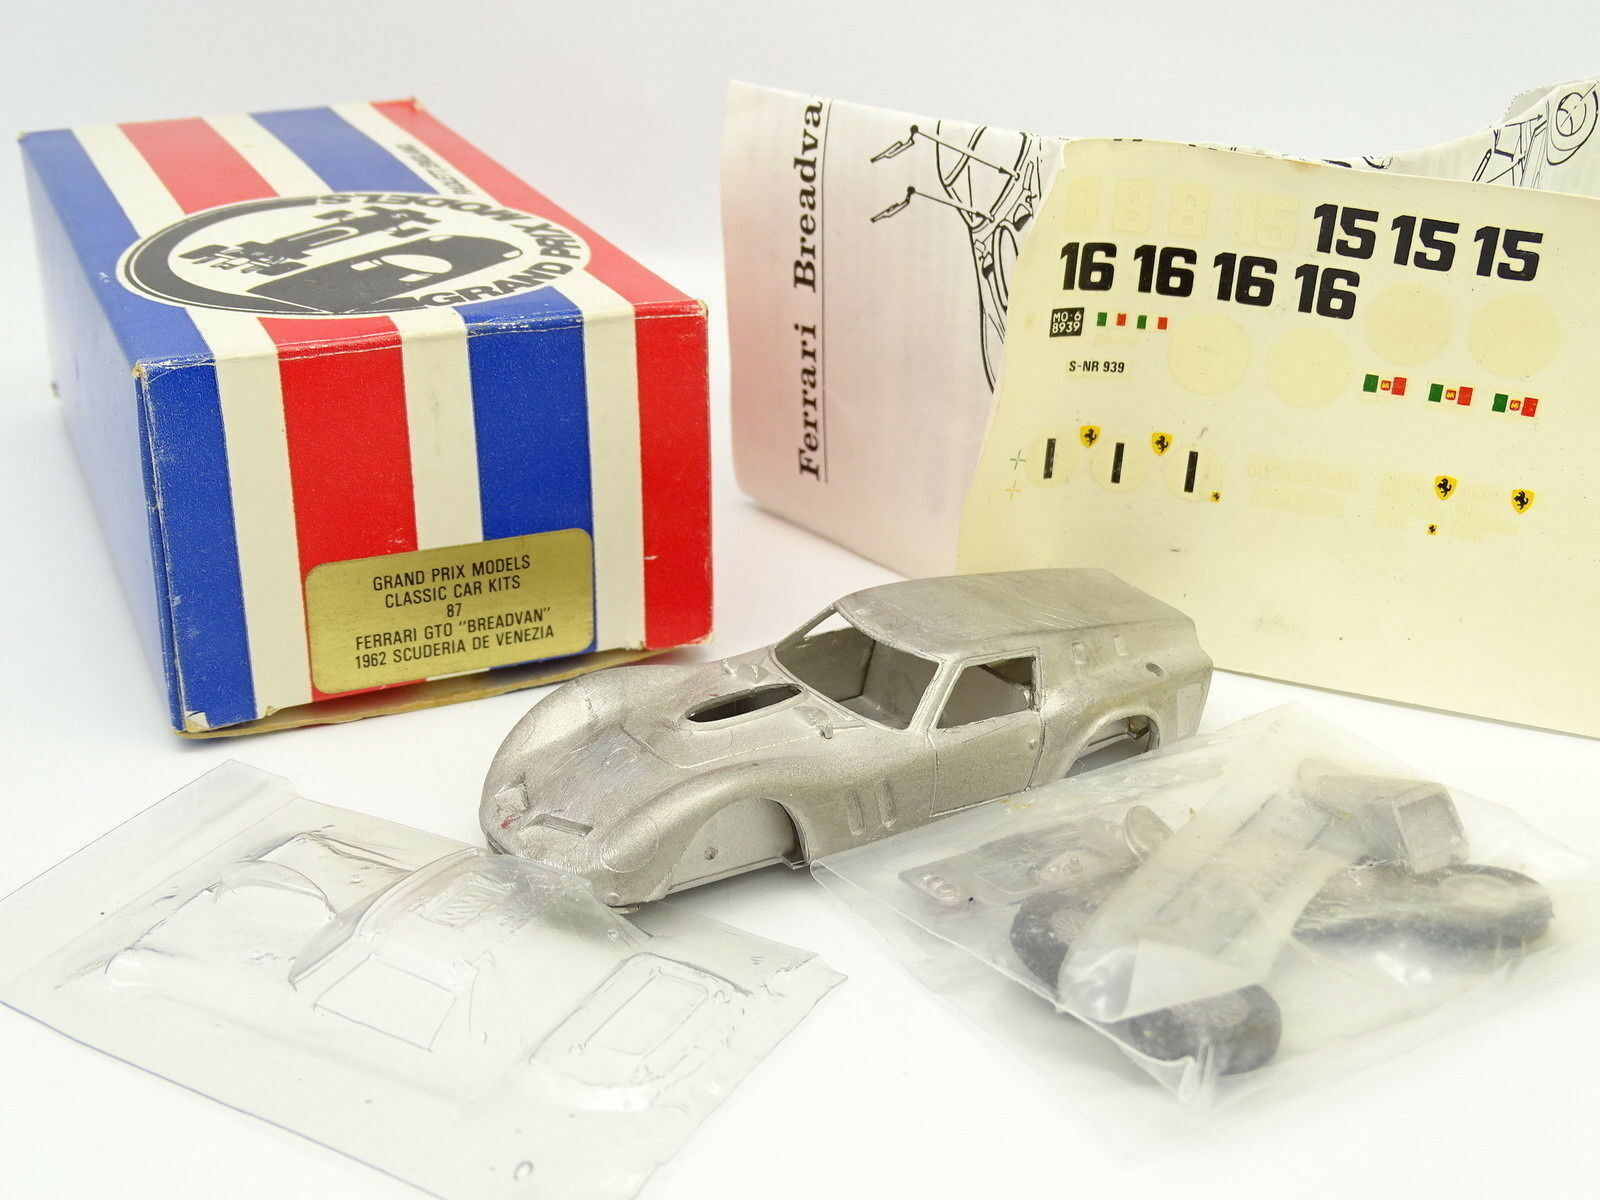 Grand Prix Models Kit à Monter 1/43 - Ferrari 250 GTO Breadvan Le Mans 2018 N°16